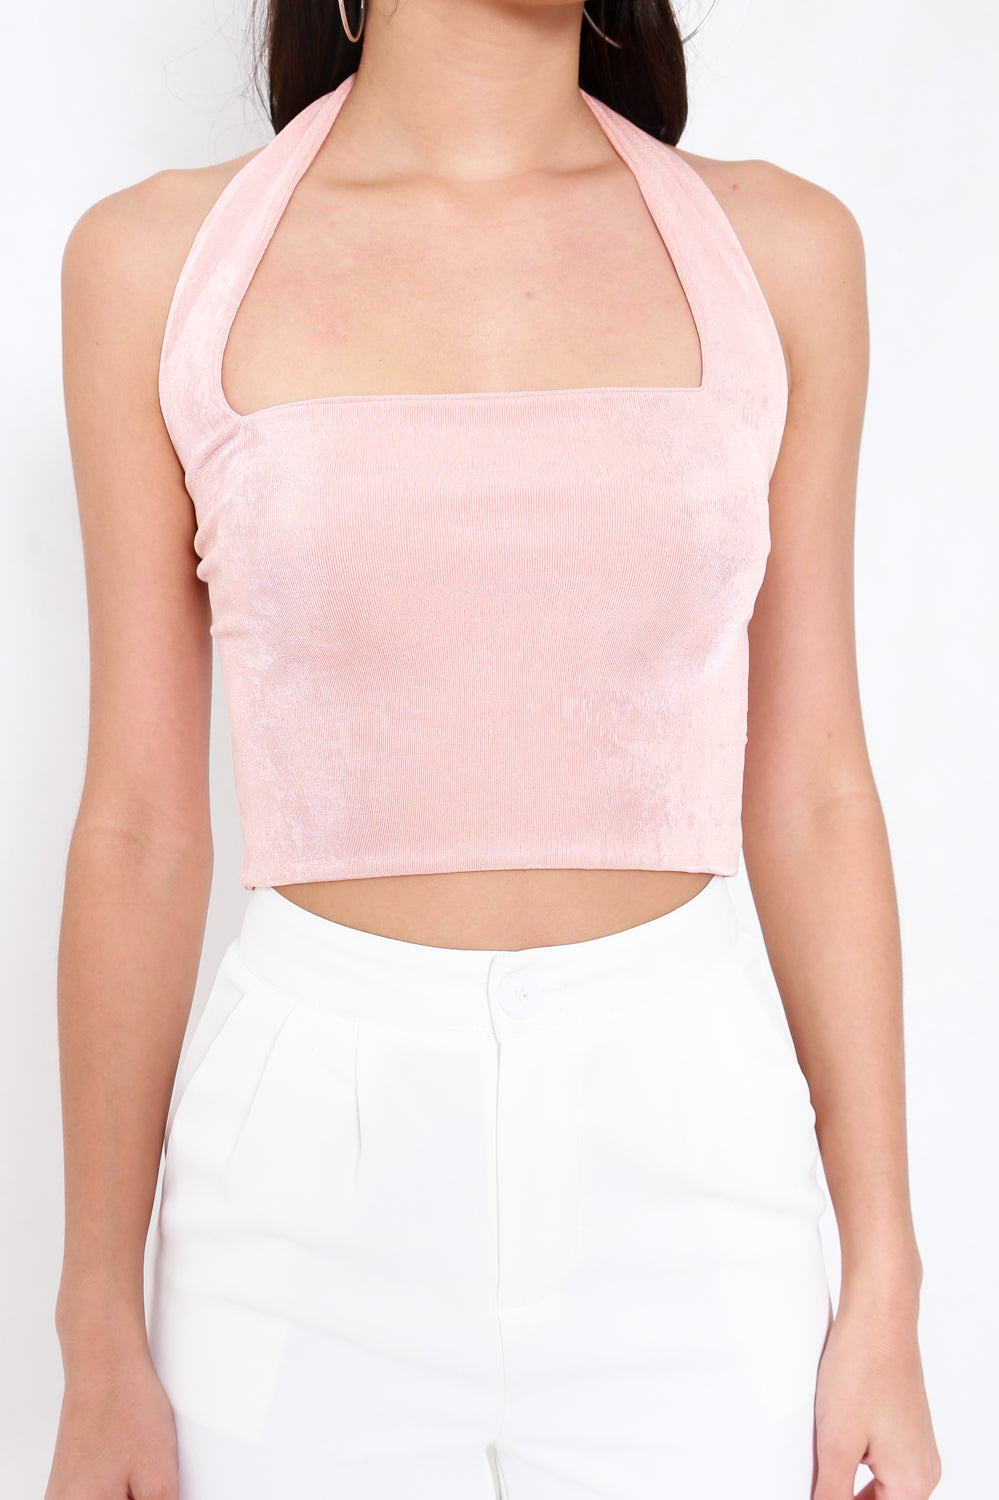 Adrianna Halter Top V2 (Peach)